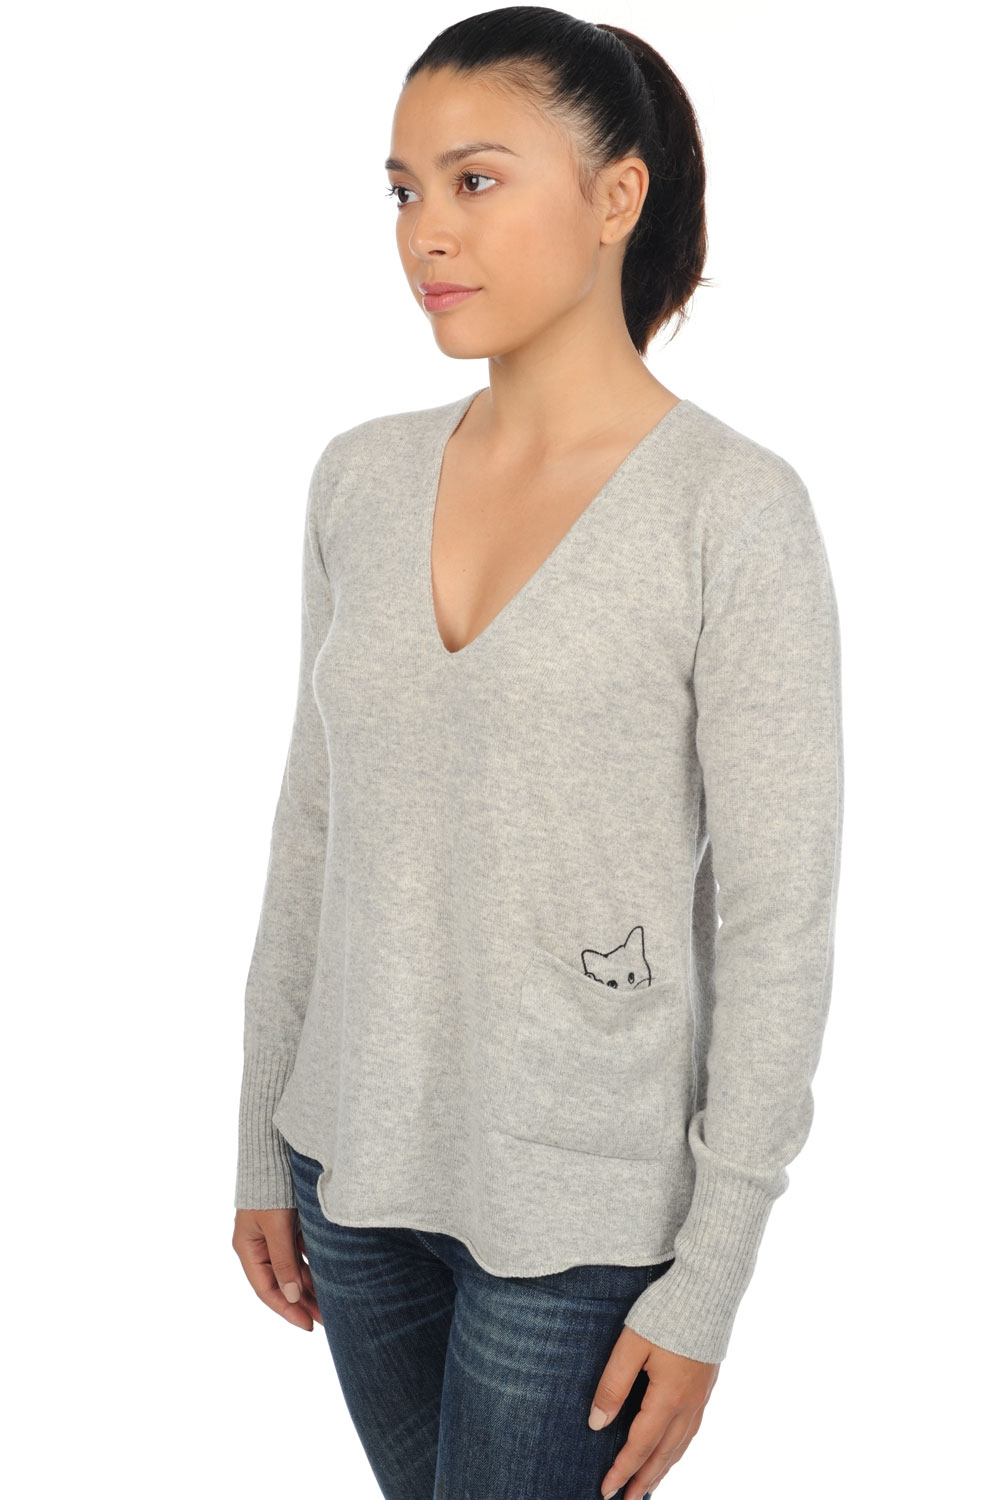 cashmere ladies v necks alwena flanelle chine l